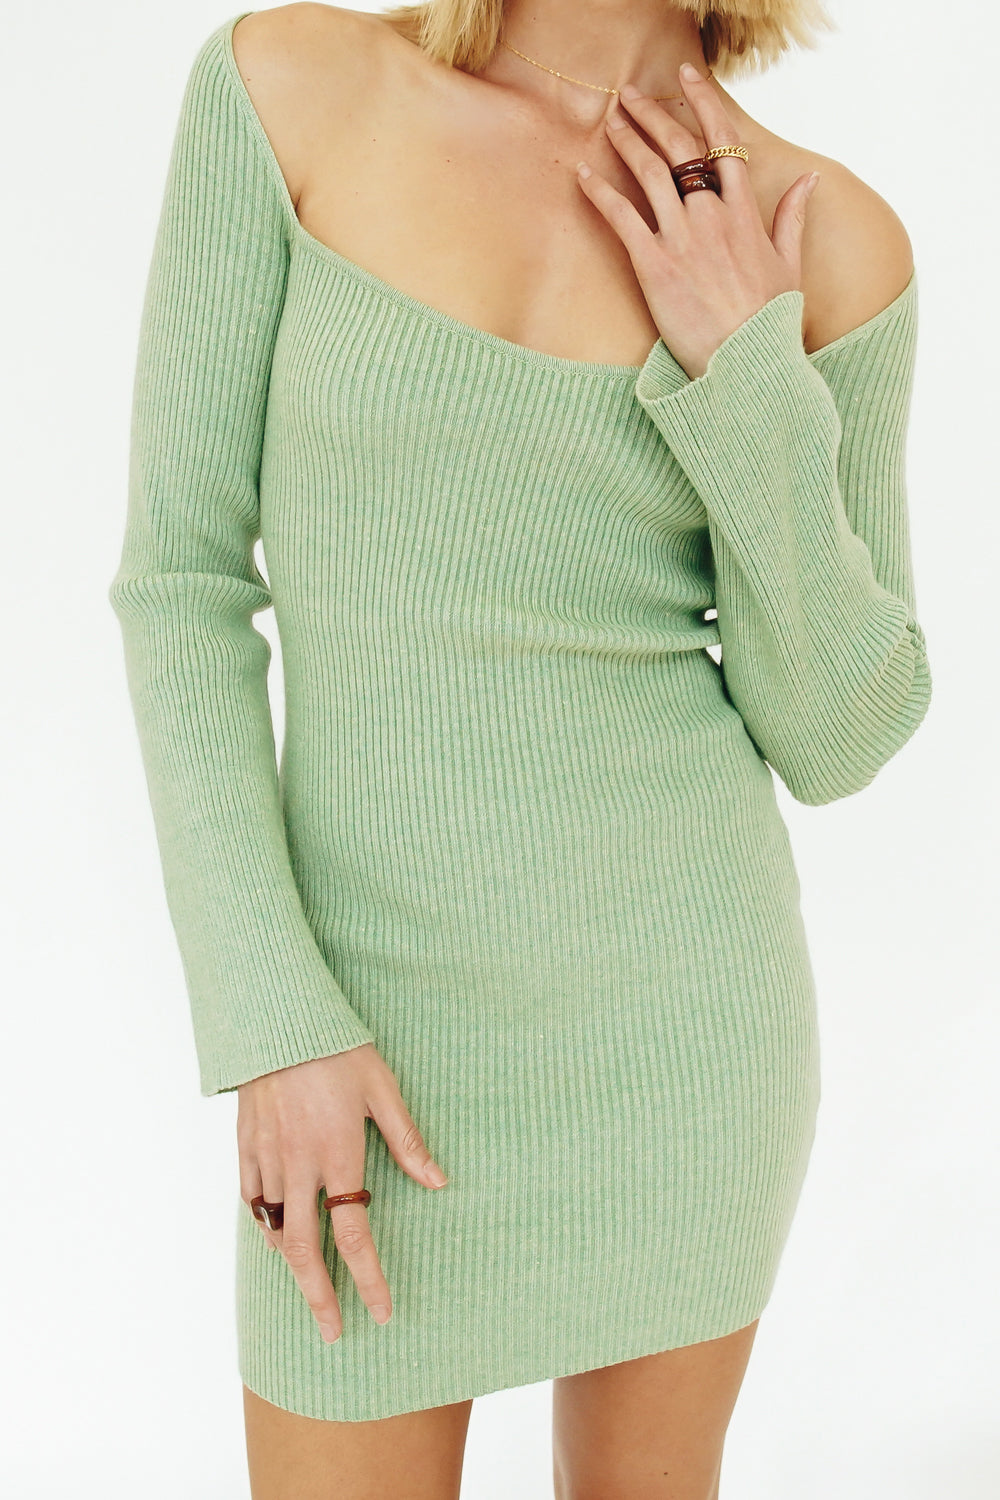 Amy Button Front Knit Top // Sand